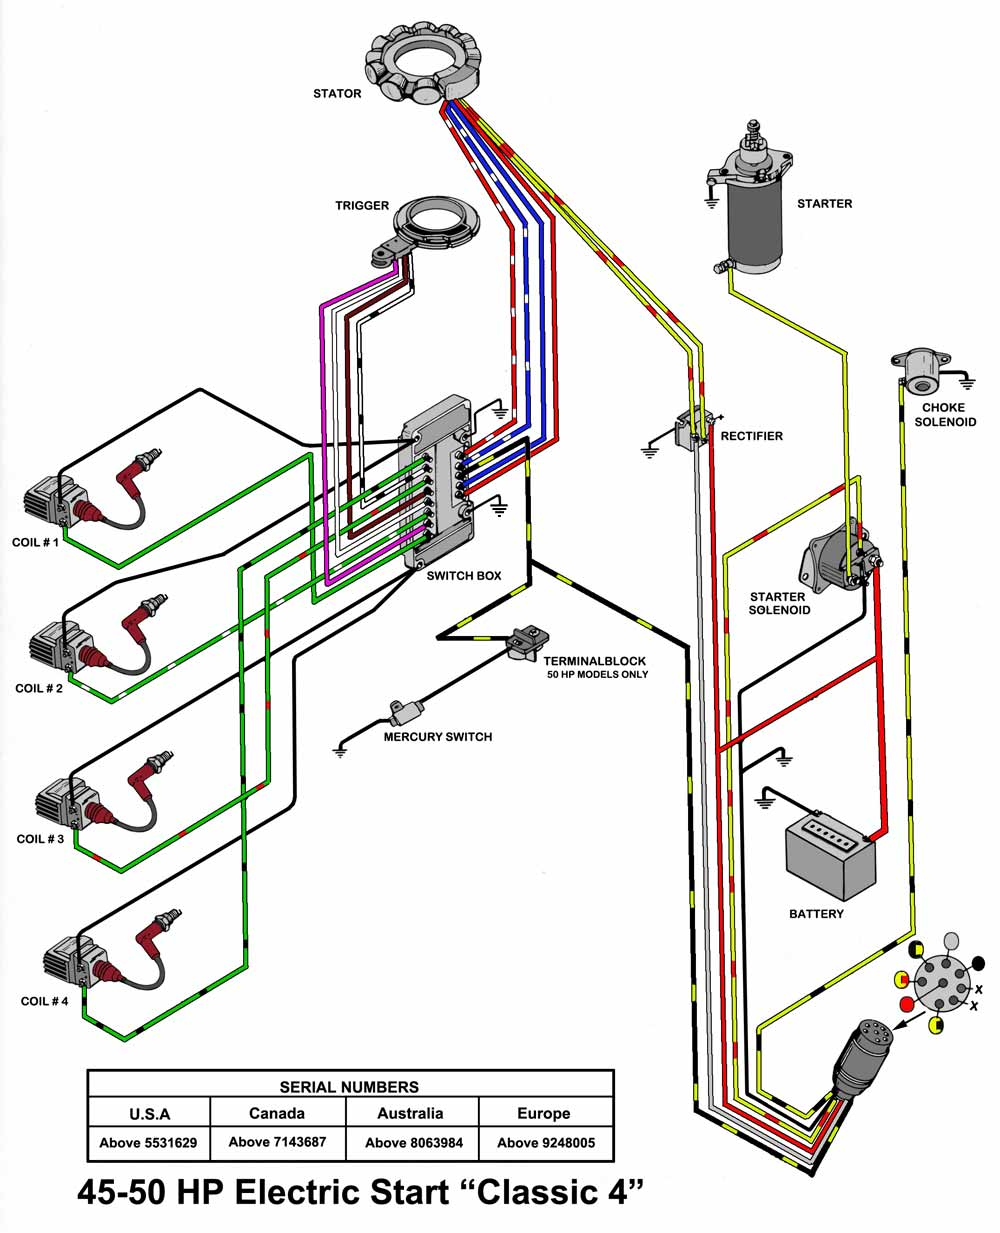 Wiring Harness Diagram 85 40 Hp Mariner Opinions About Wiring GM HEI  Distributor Module Wiring Diagram 1982 50 Hp Mercury Outboard Wiring Diagram